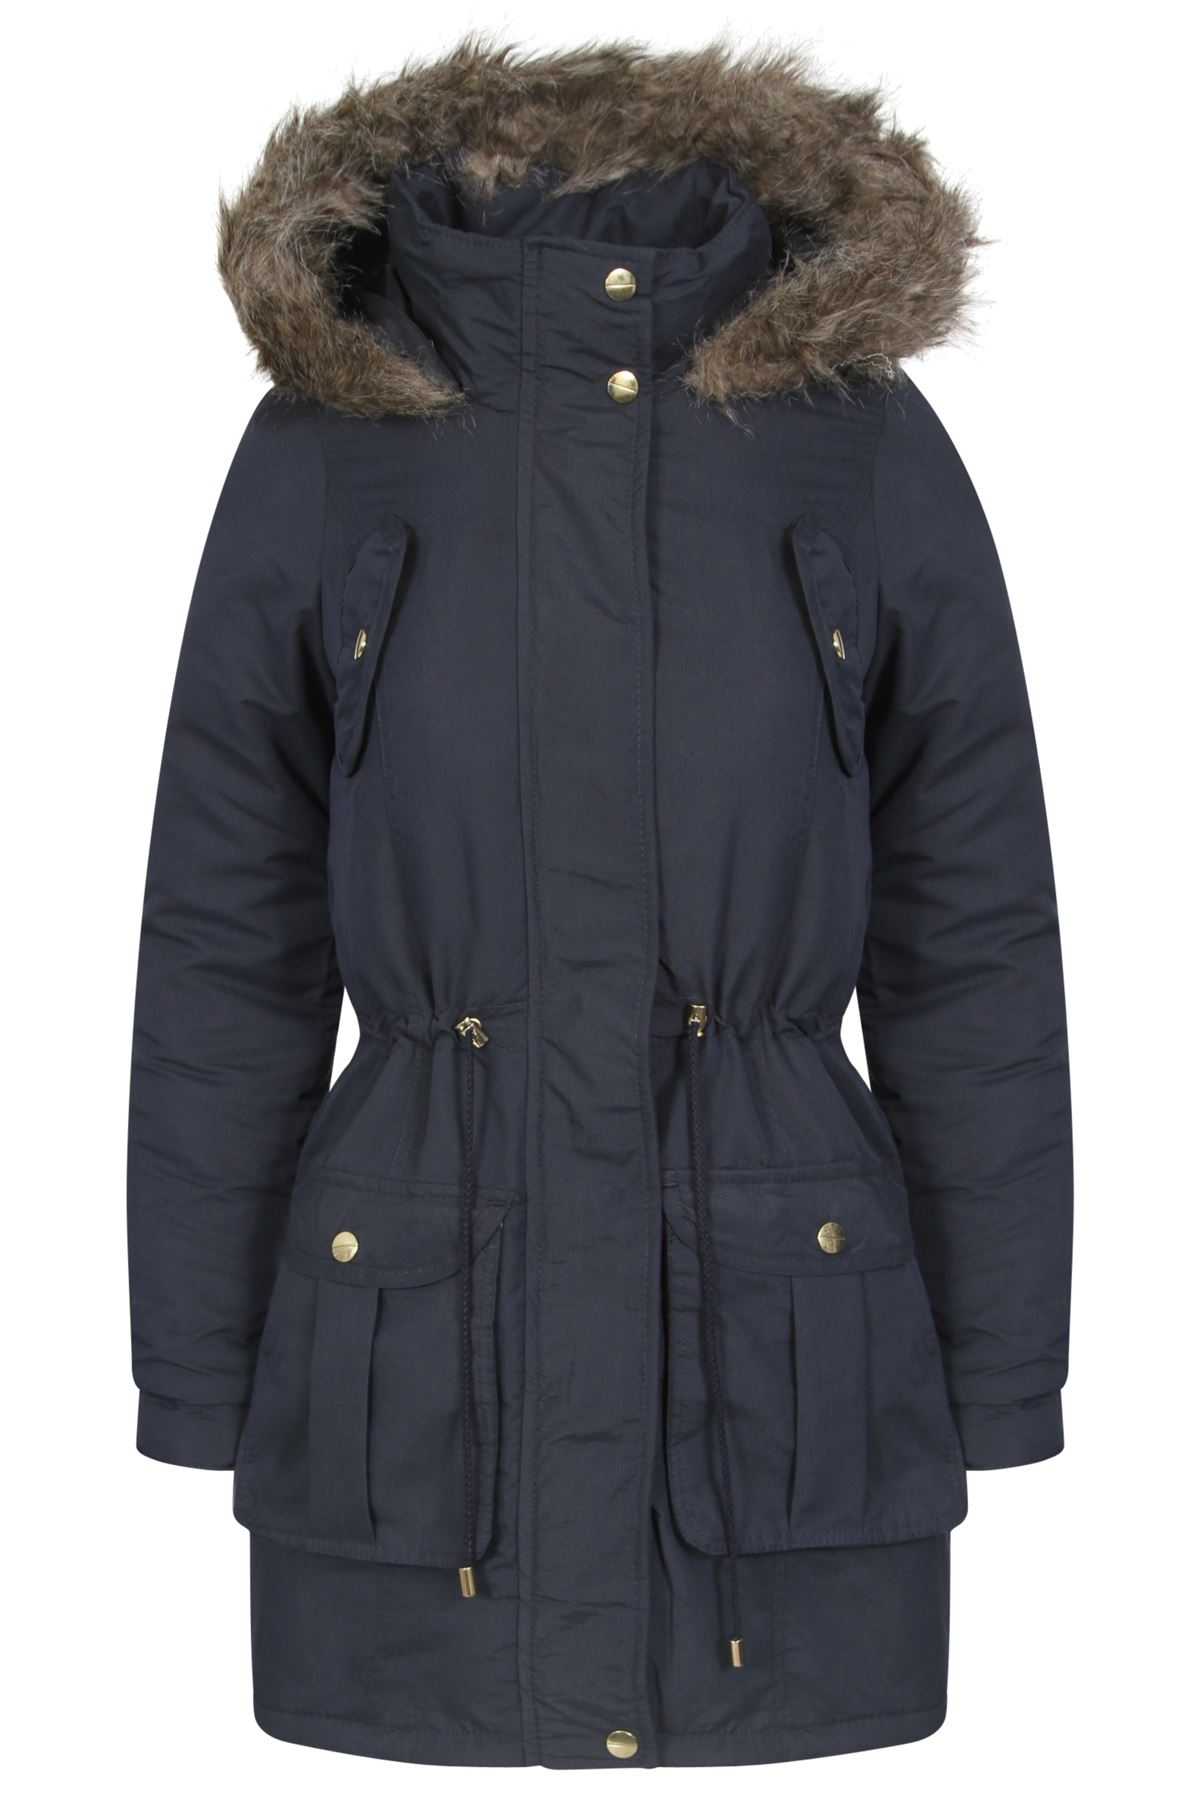 Find great deals on eBay for Womens Fur Trimmed Jackets in Coats and Jackets for the Modern Lady. Shop with confidence.